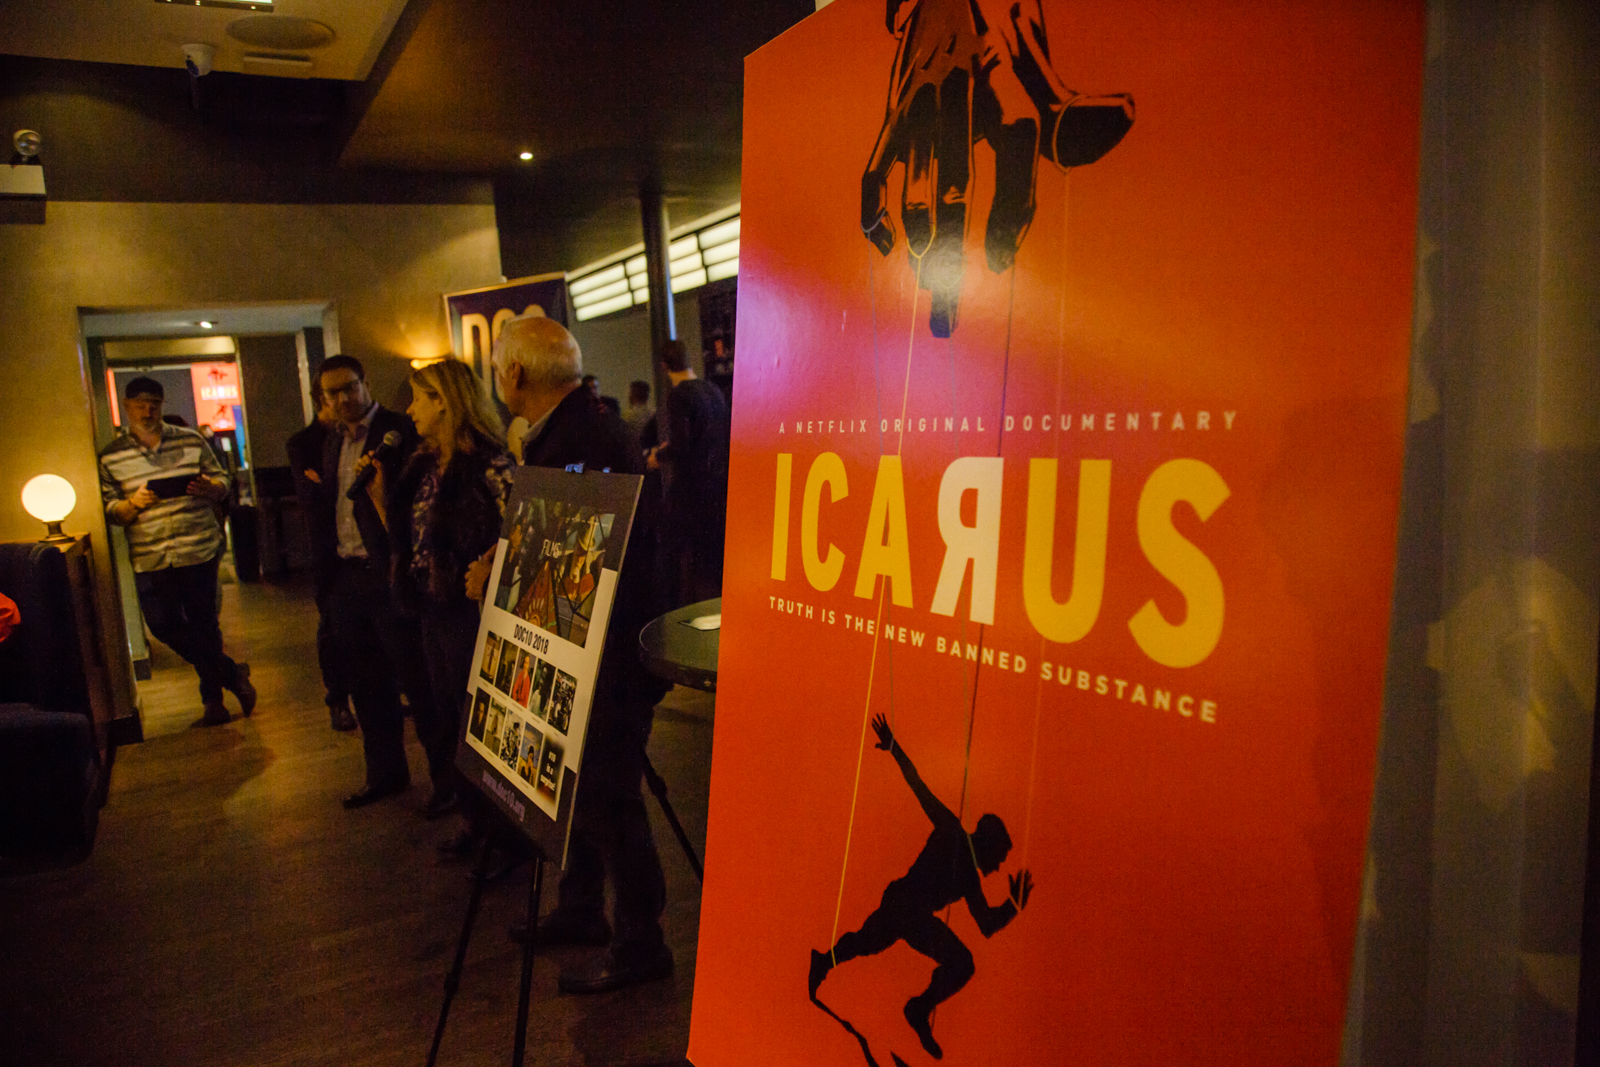 180222-dinner-and-docs-icarus-056.jpg